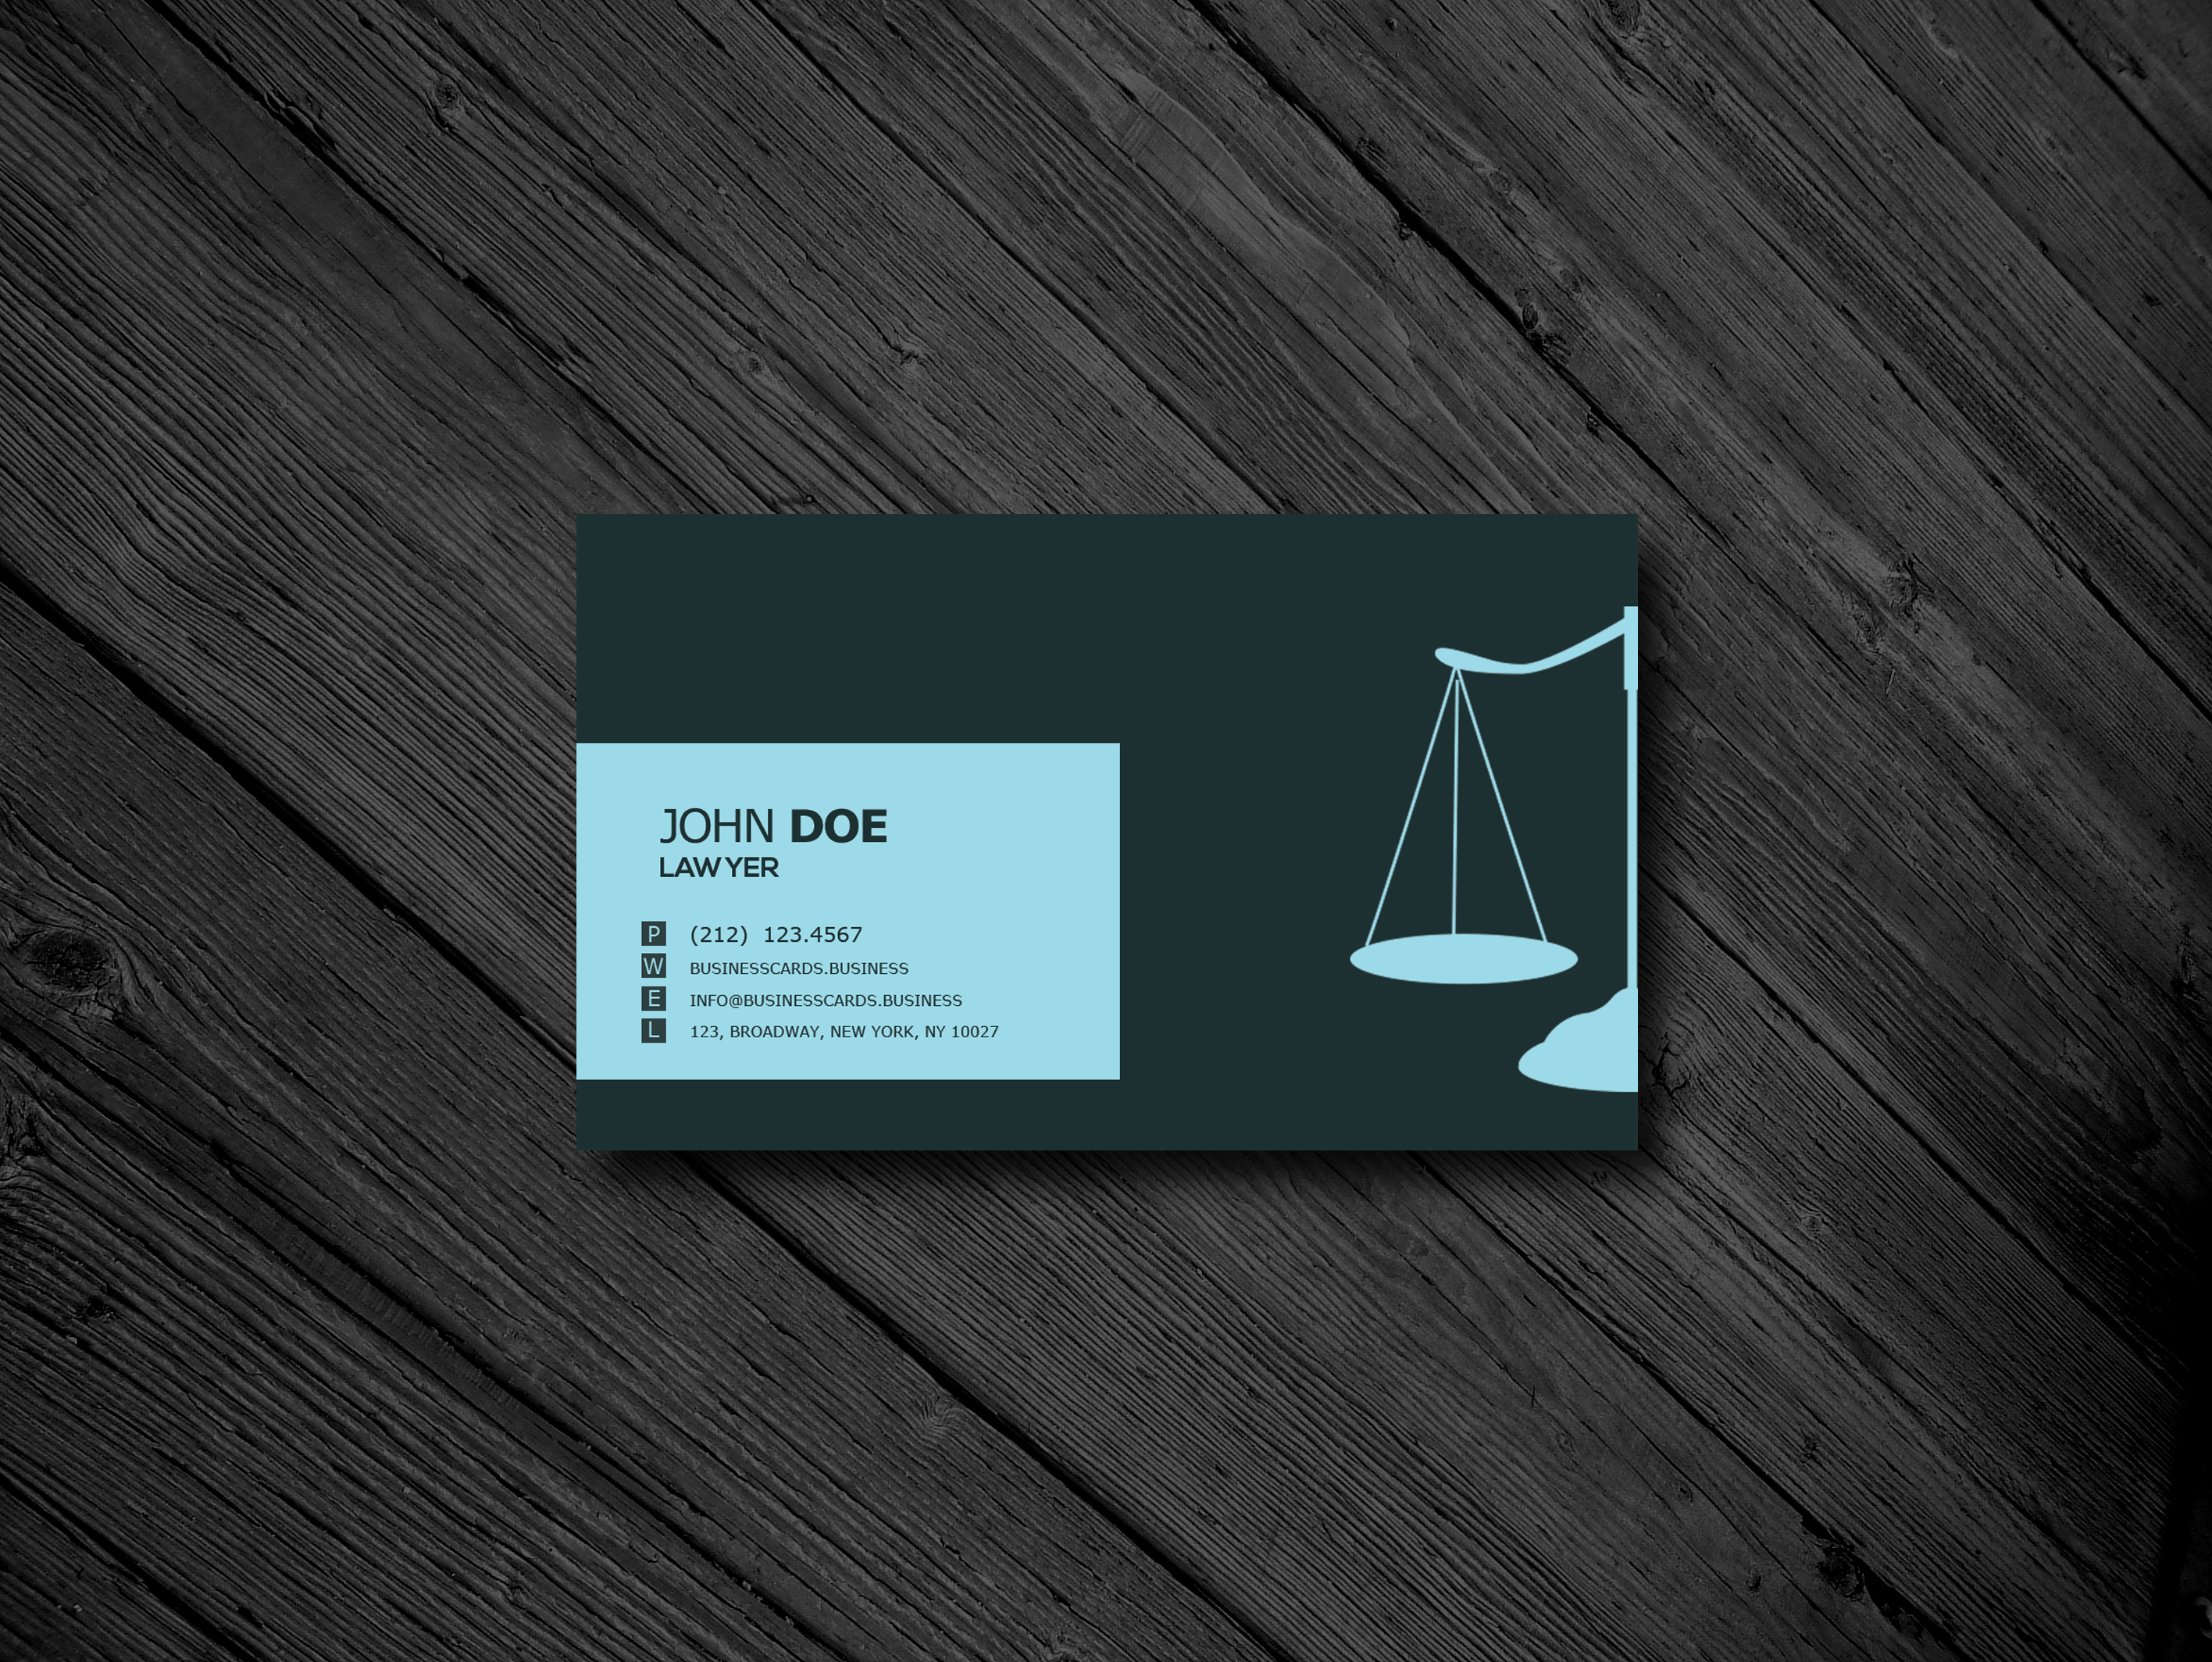 Free business card templates business cards templates free lawyer business card psd template flashek Image collections